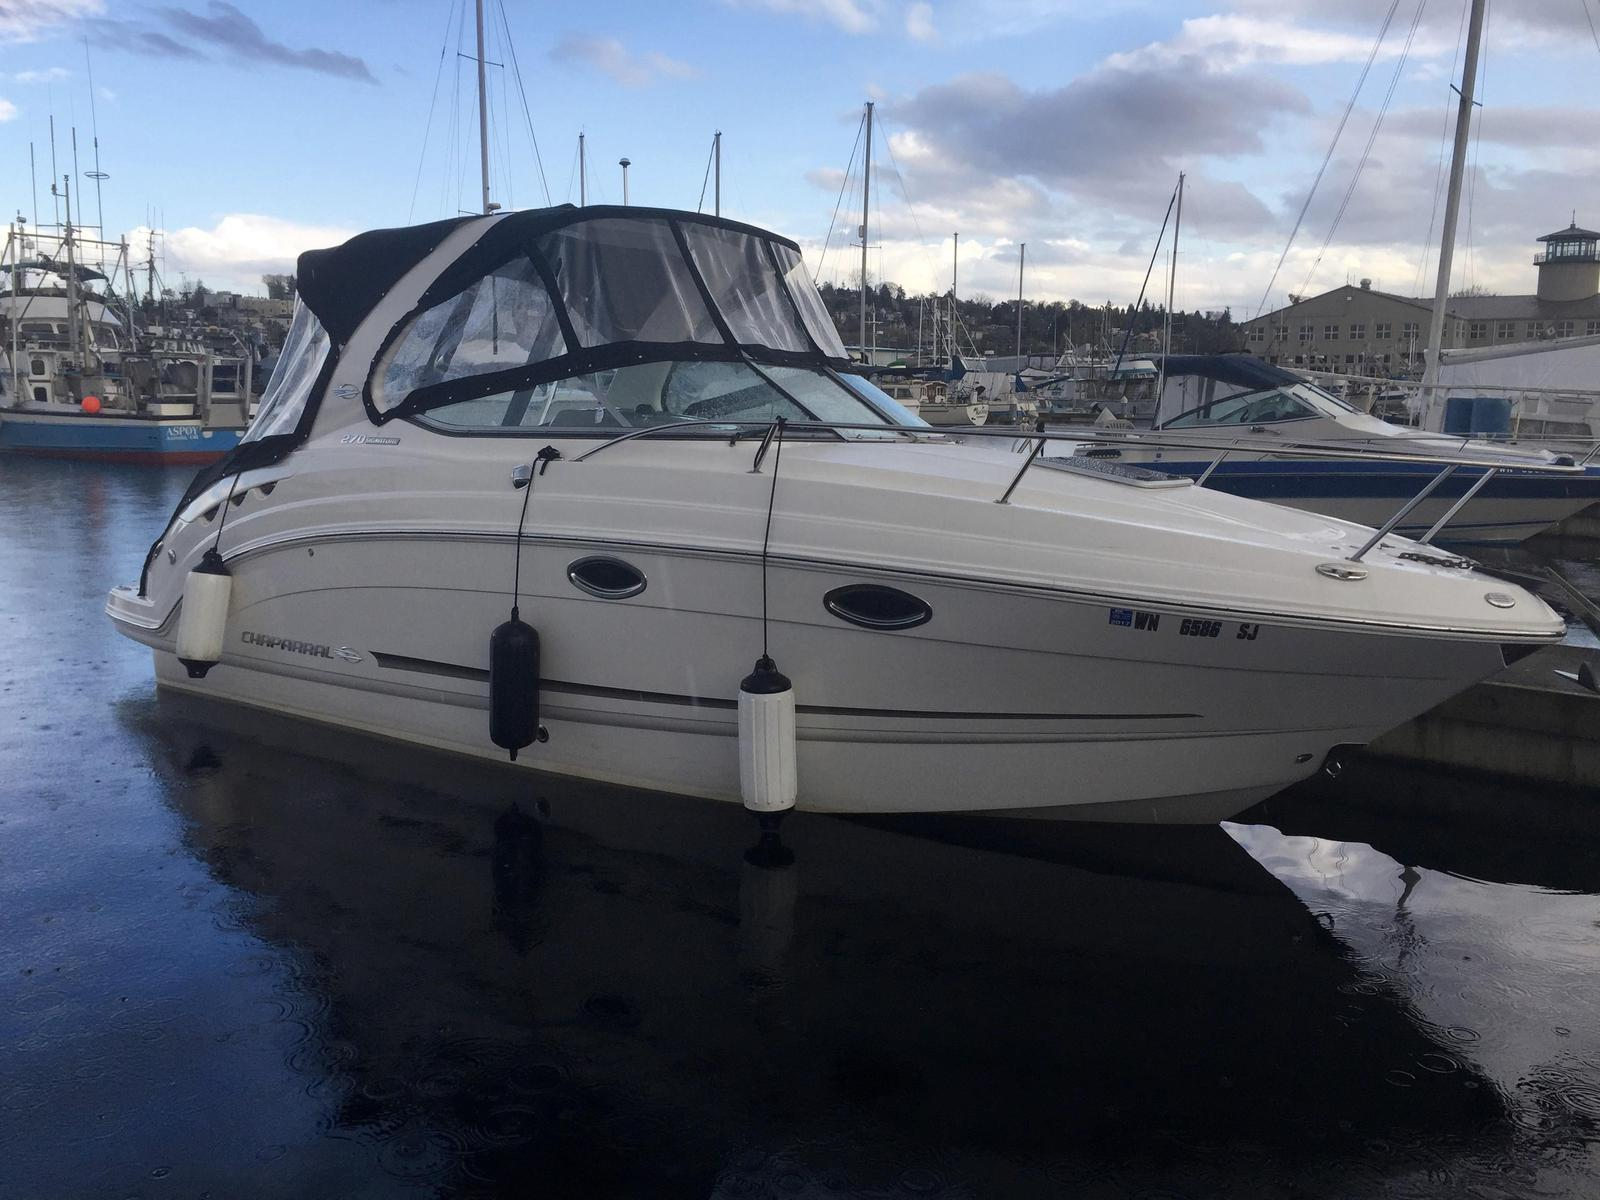 Inventory from Chaparral Rockingham Marine